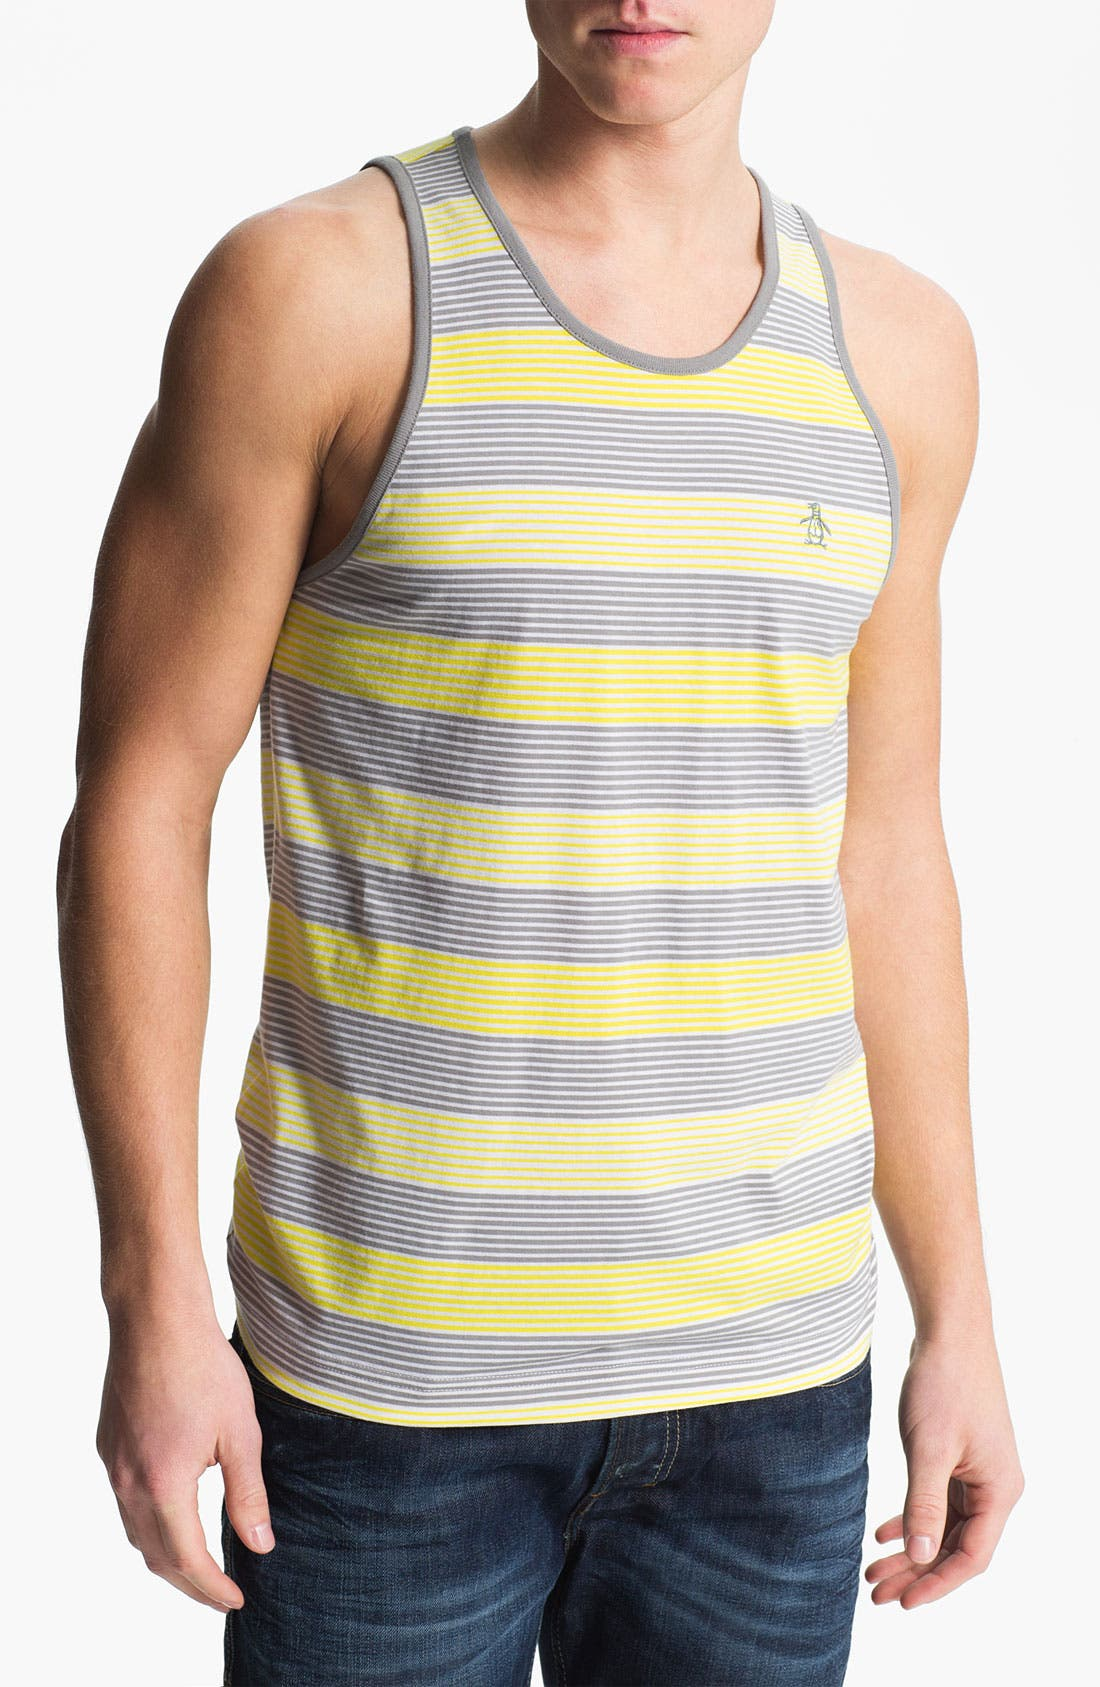 Main Image - Original Penguin Stripe Tank Top